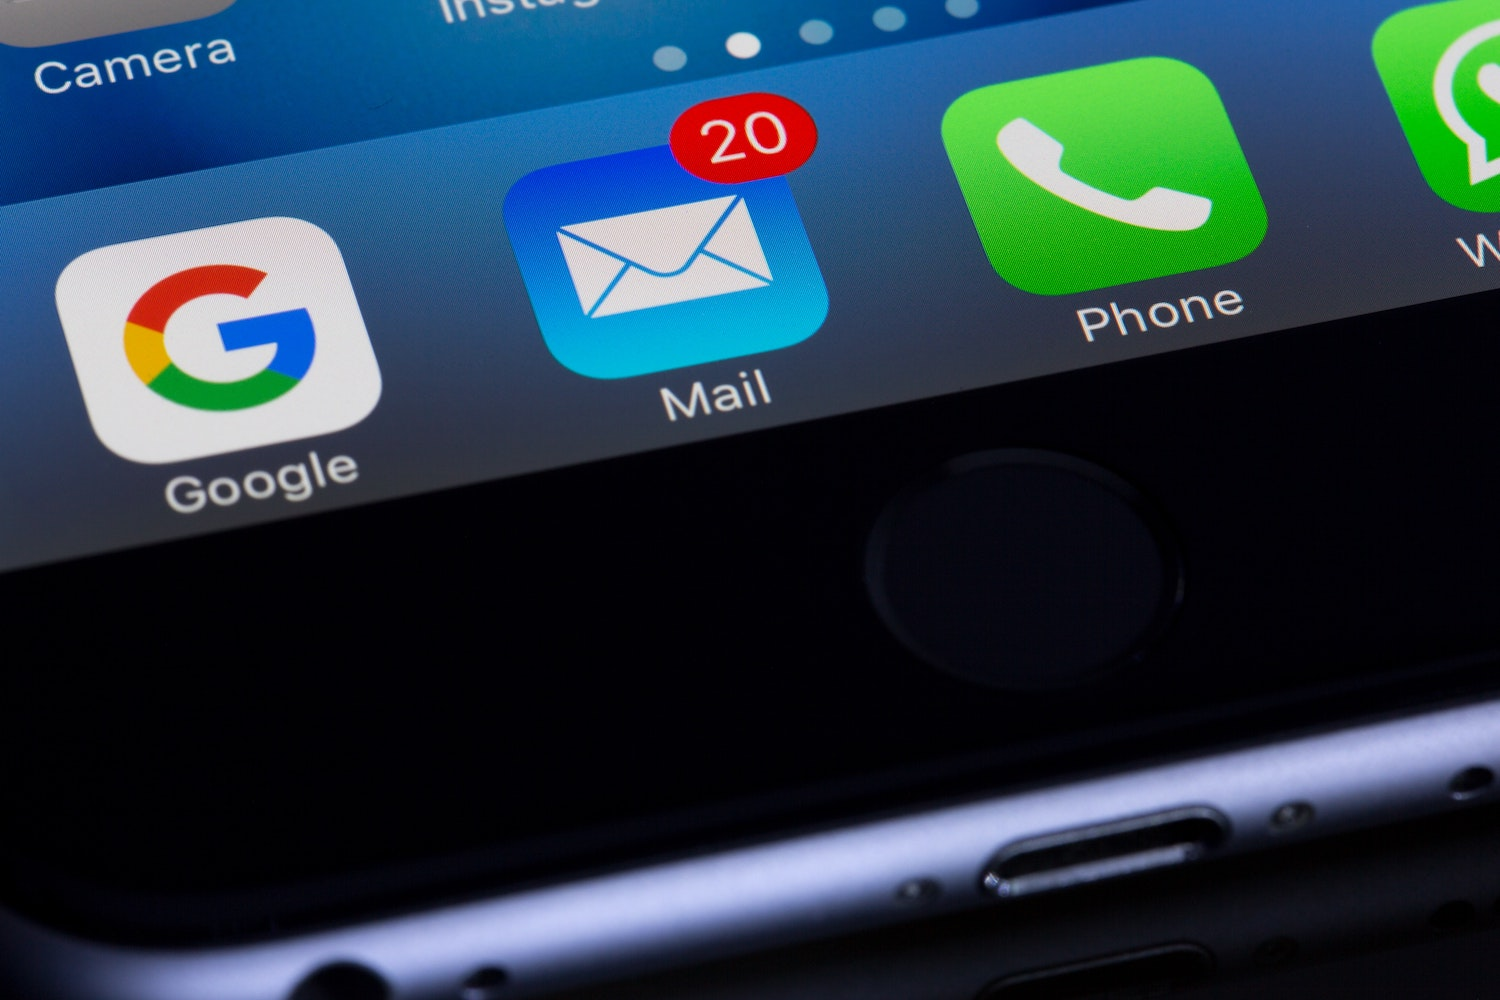 Apple Mail app with email notifications